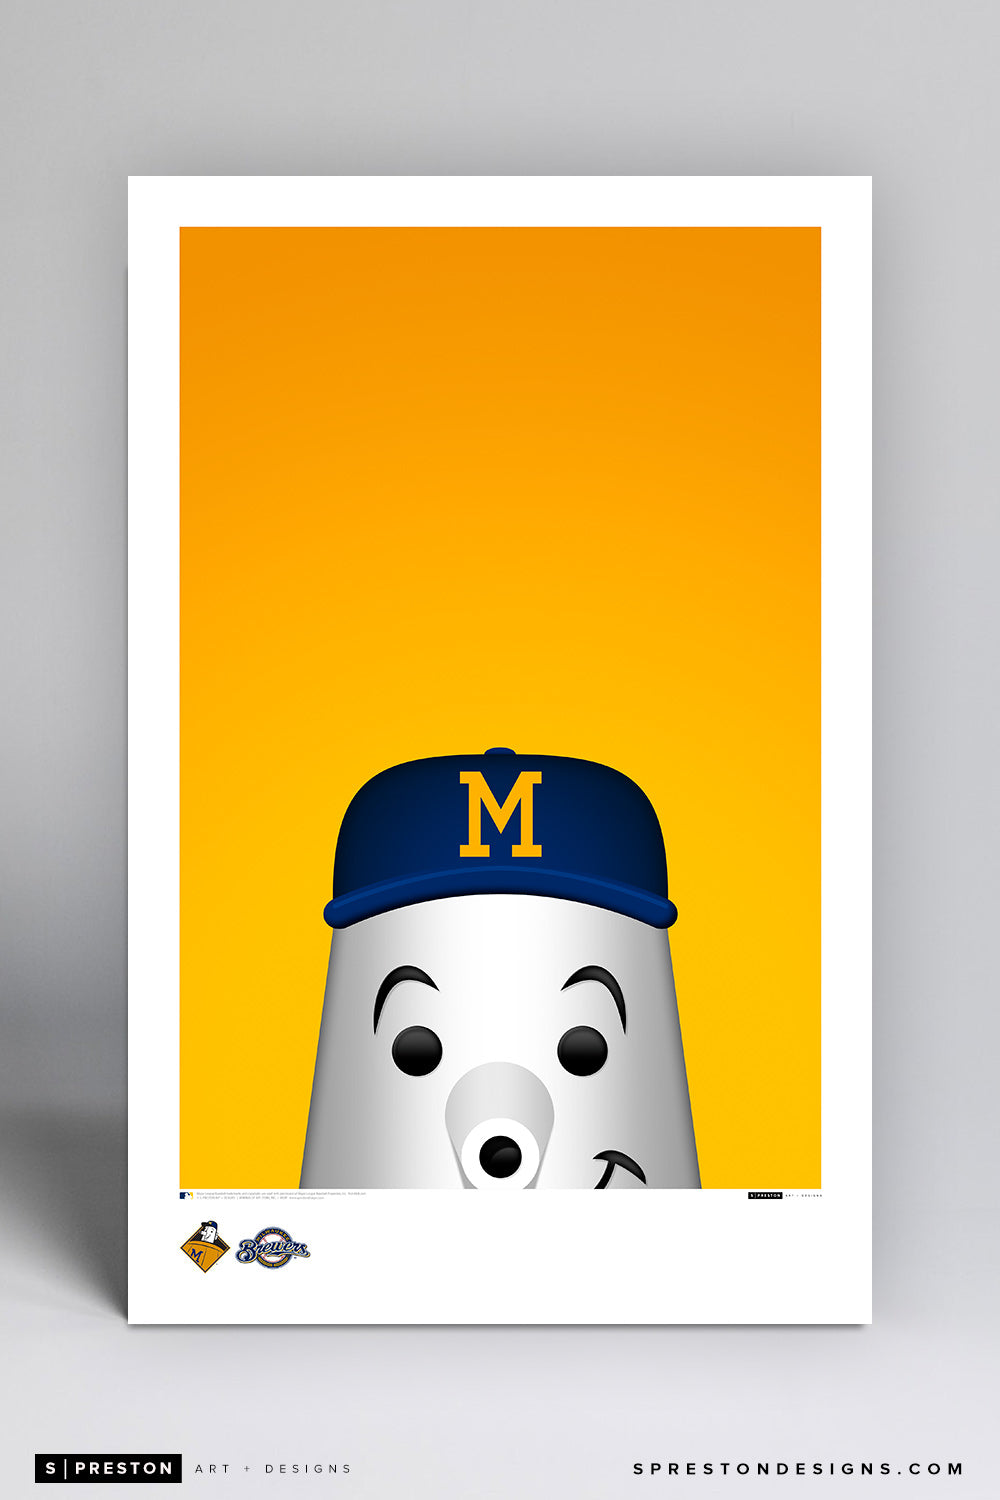 Minimalist Barrelman Poster Print Milwaukee Brewers - S Preston